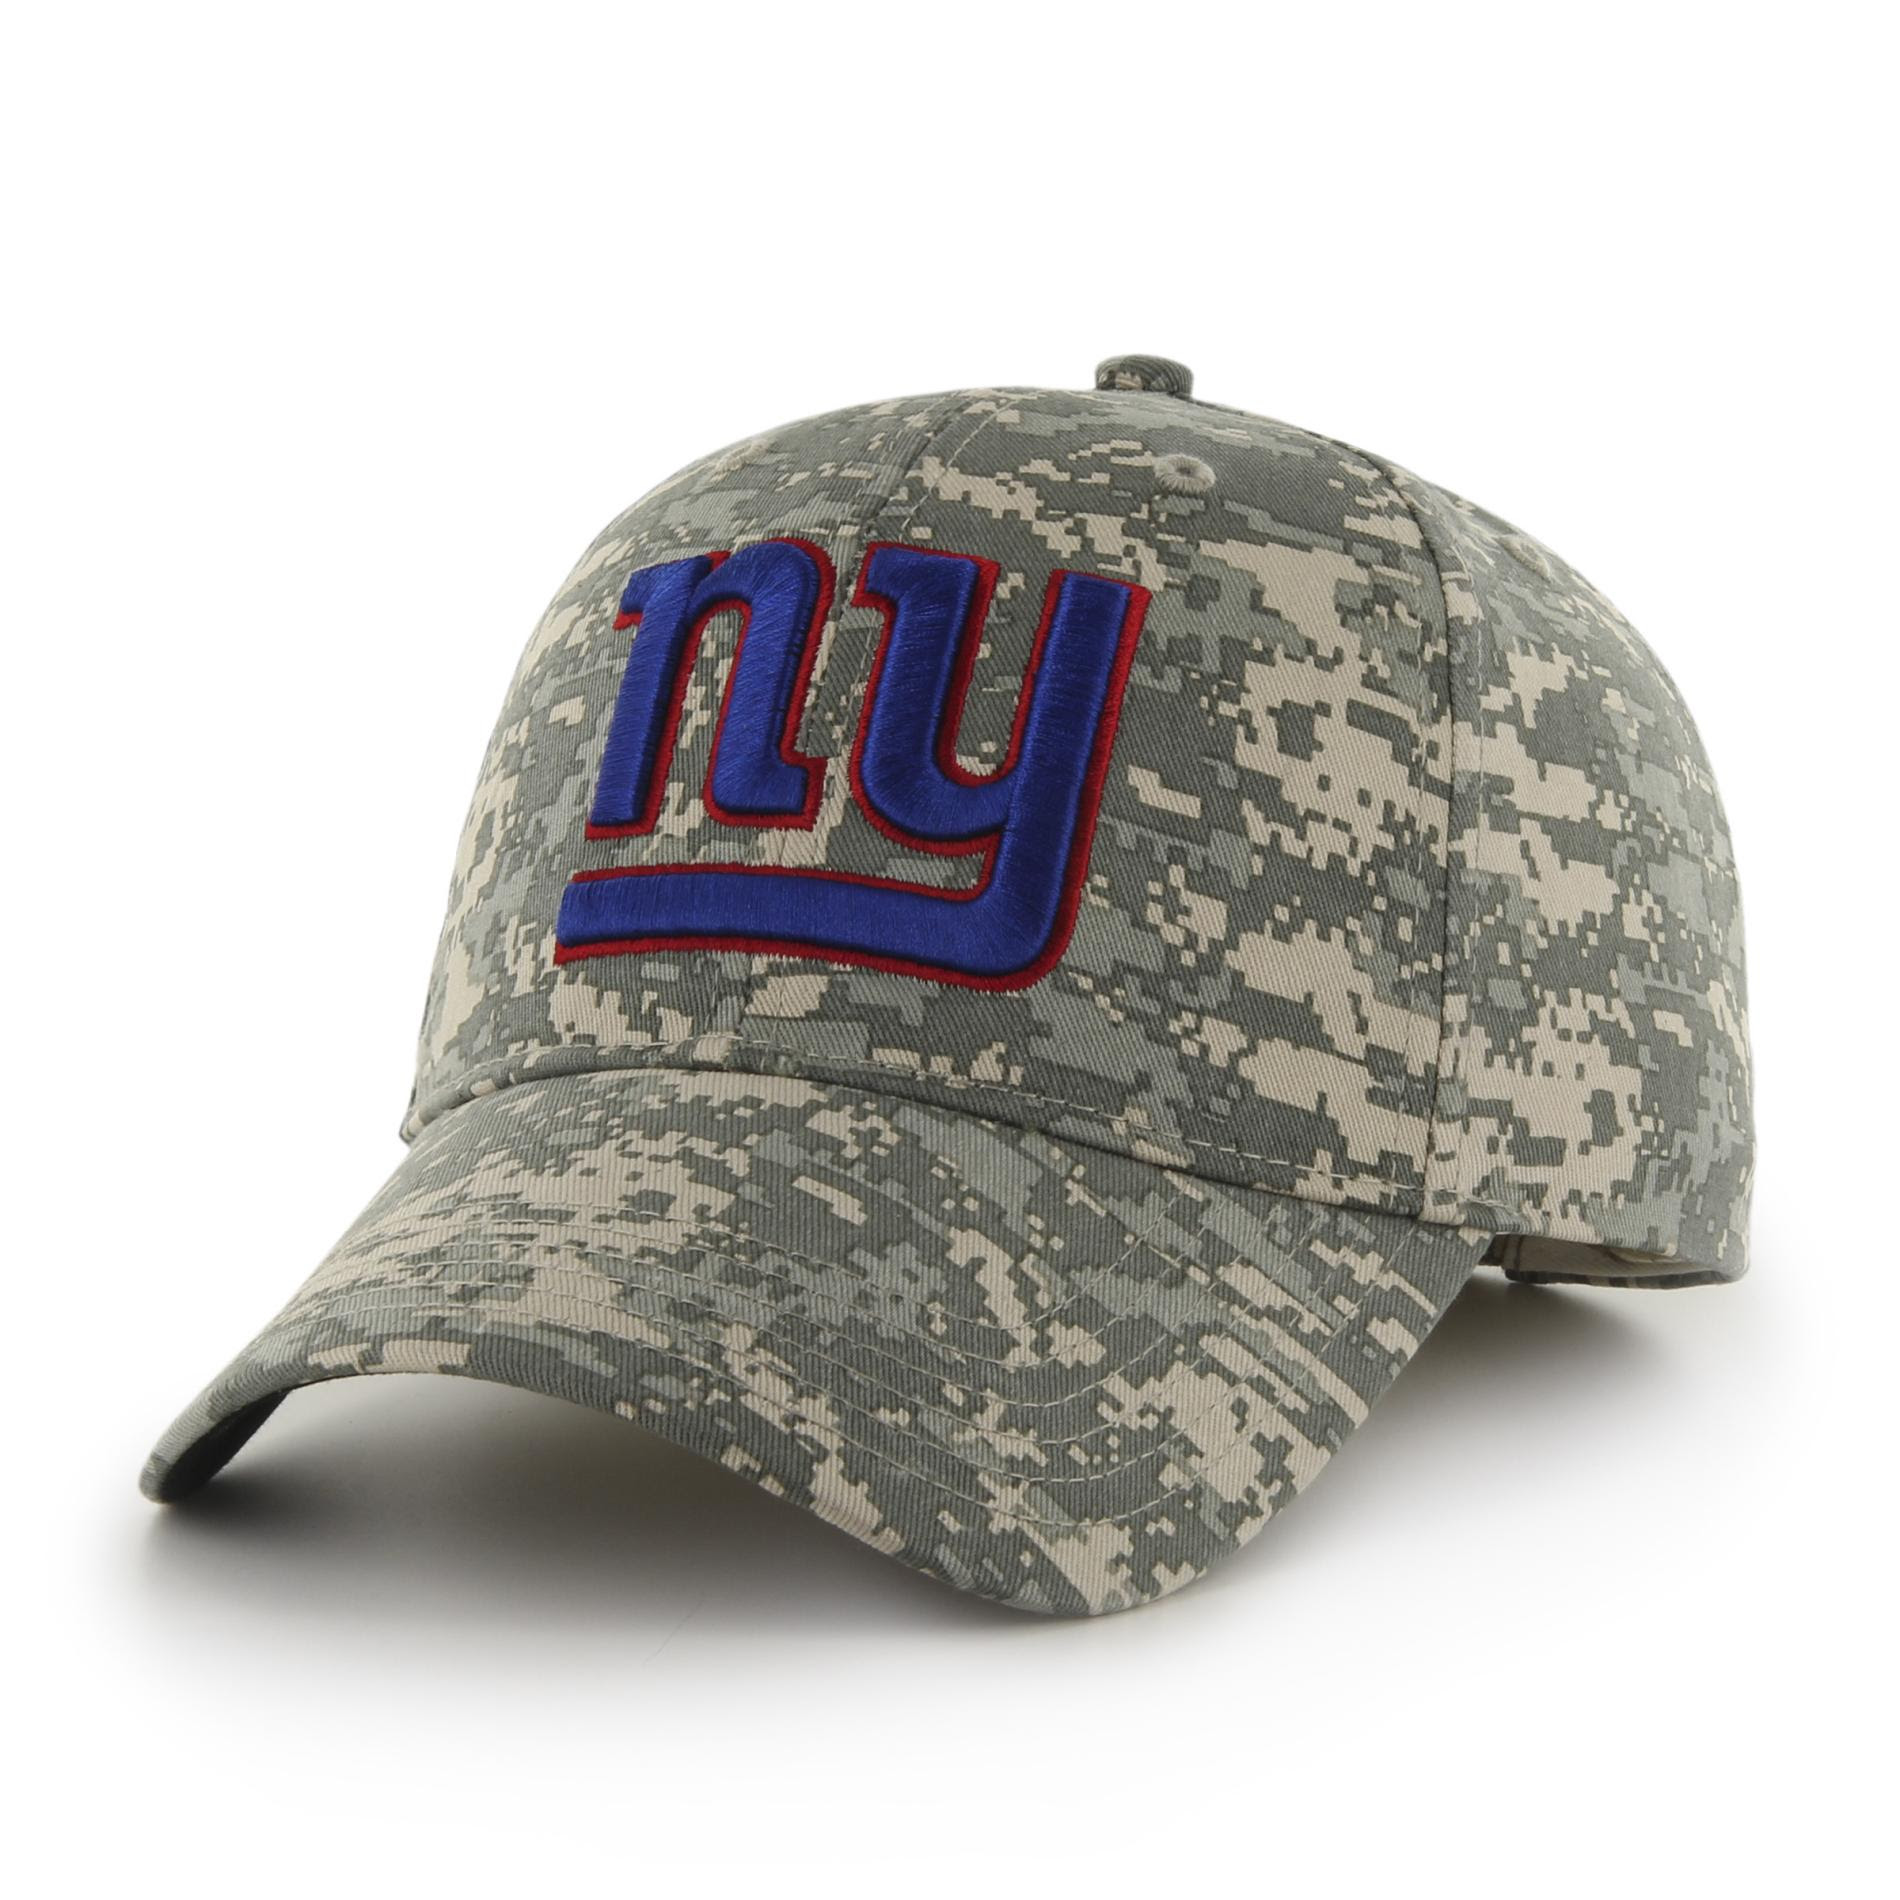 NFL Mens Camo Baseball Hat  New York Giants